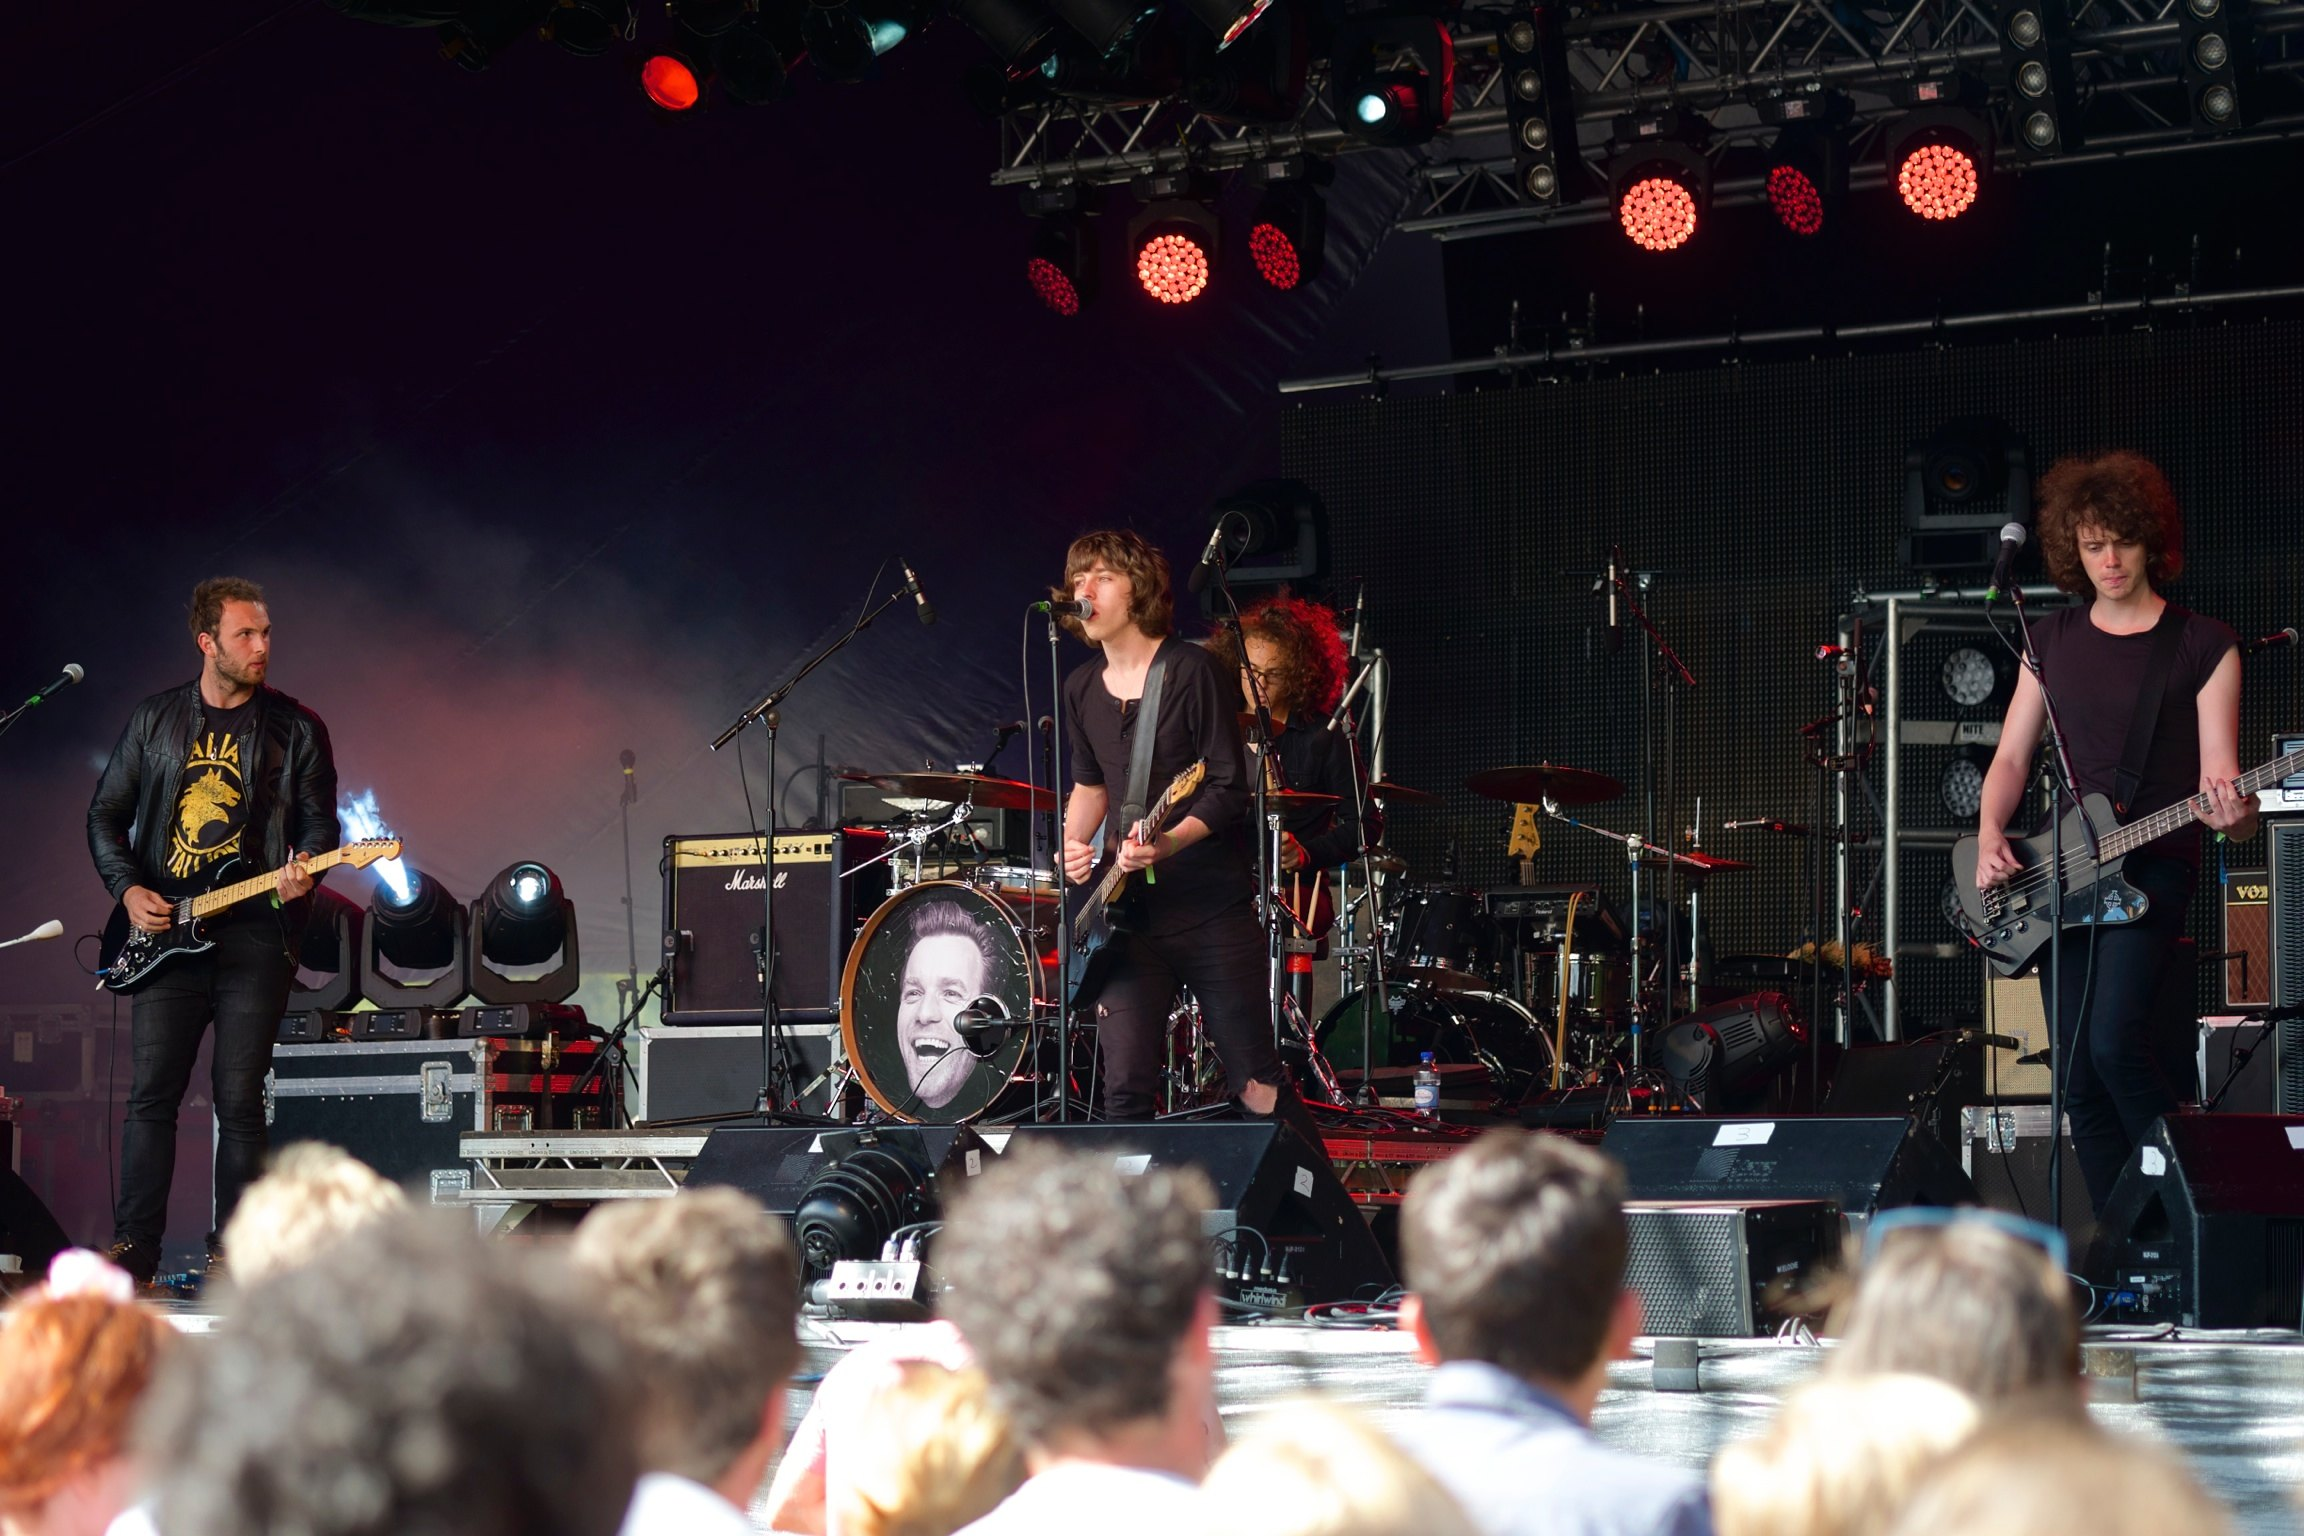 Catfish and The Bottlemen at Somersault Festival 1